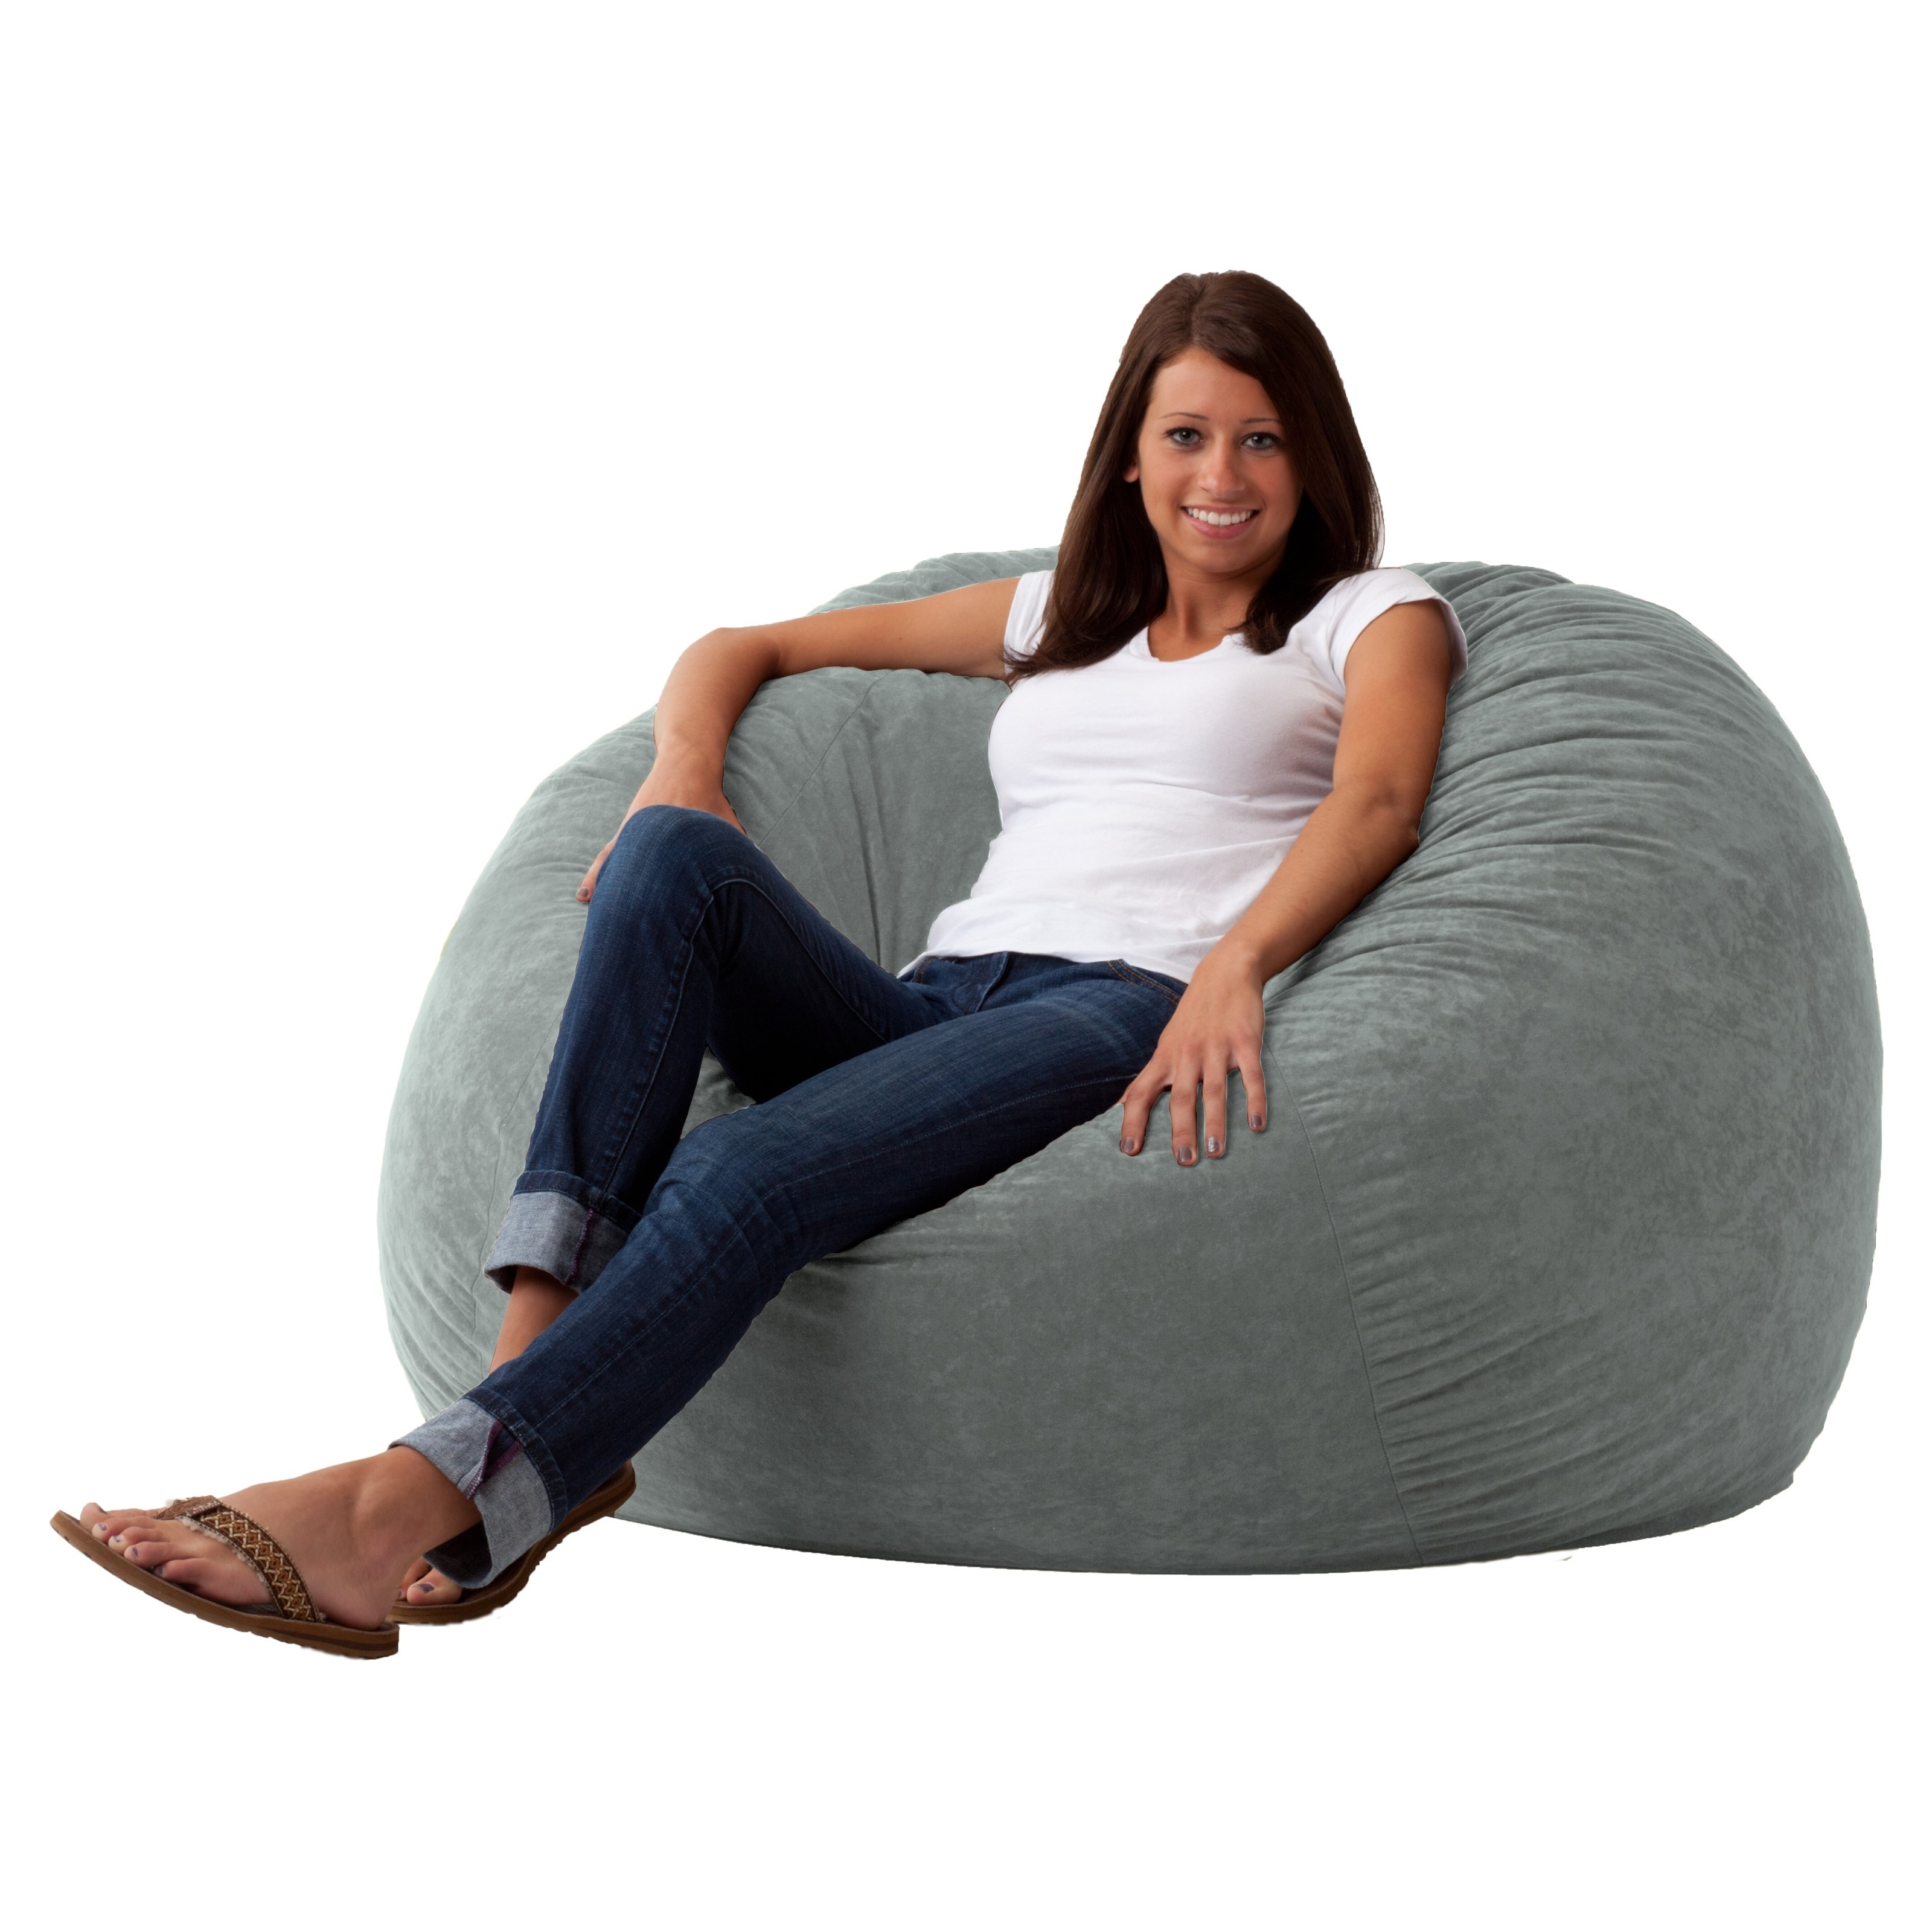 Hayneedle Intended For Well Known Bean Bag Sofas (View 11 of 20)